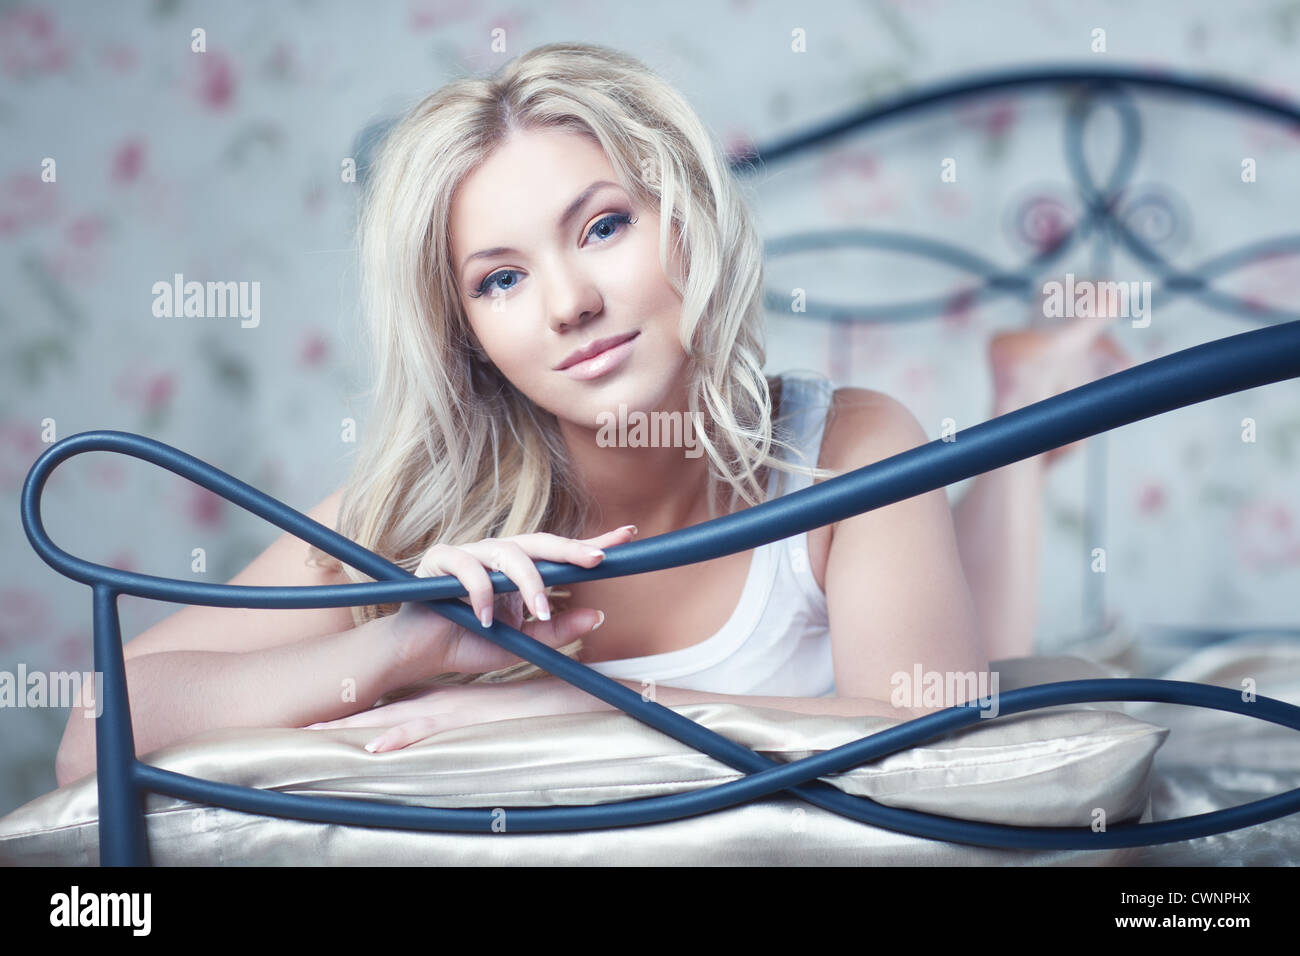 Young woman in bed. Bright white colors. - Stock Image